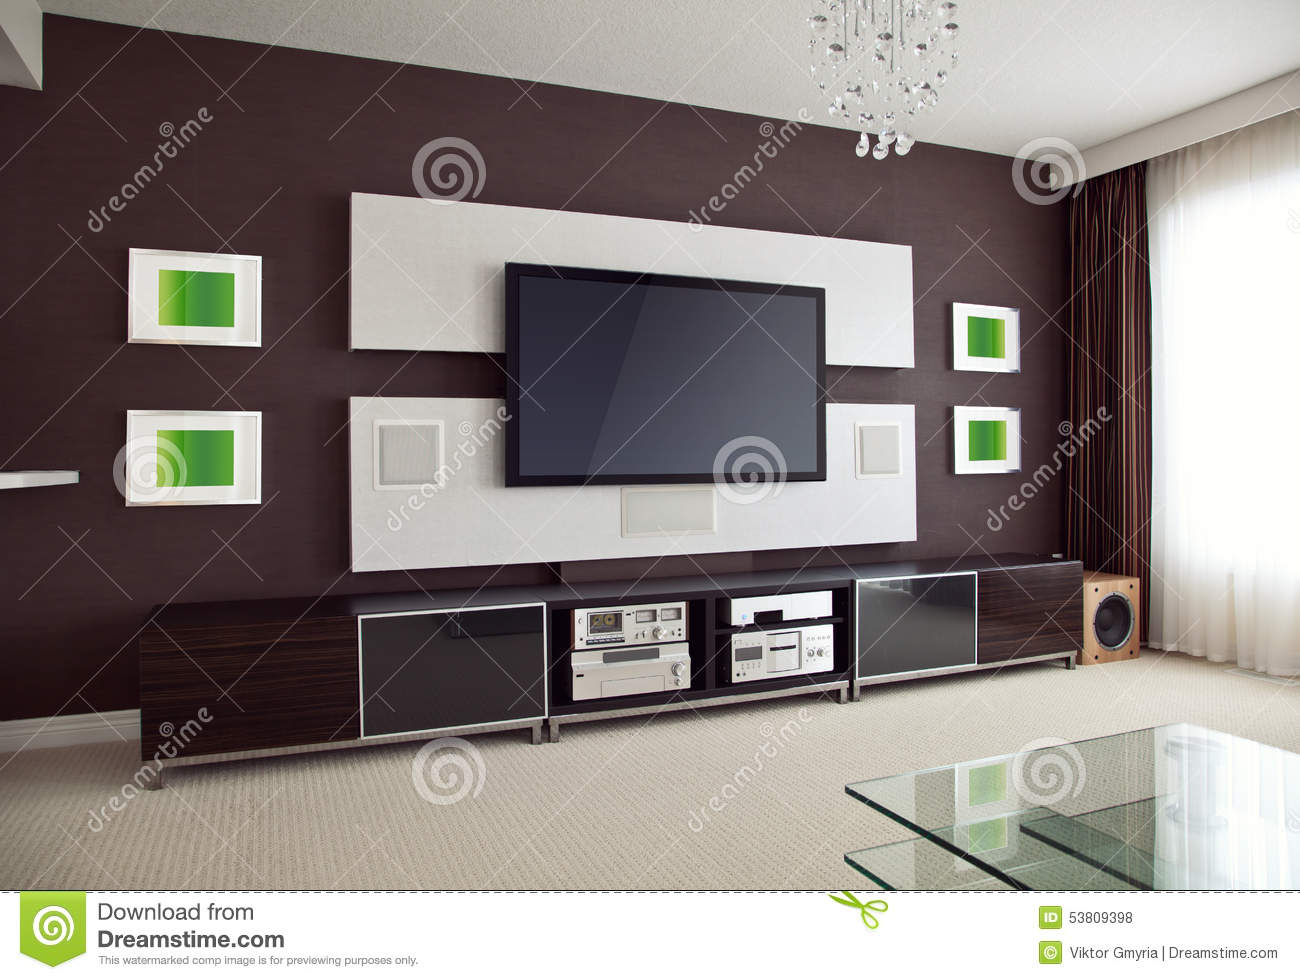 Modern home theater room interior with flat screen tv for Living room interior in flat